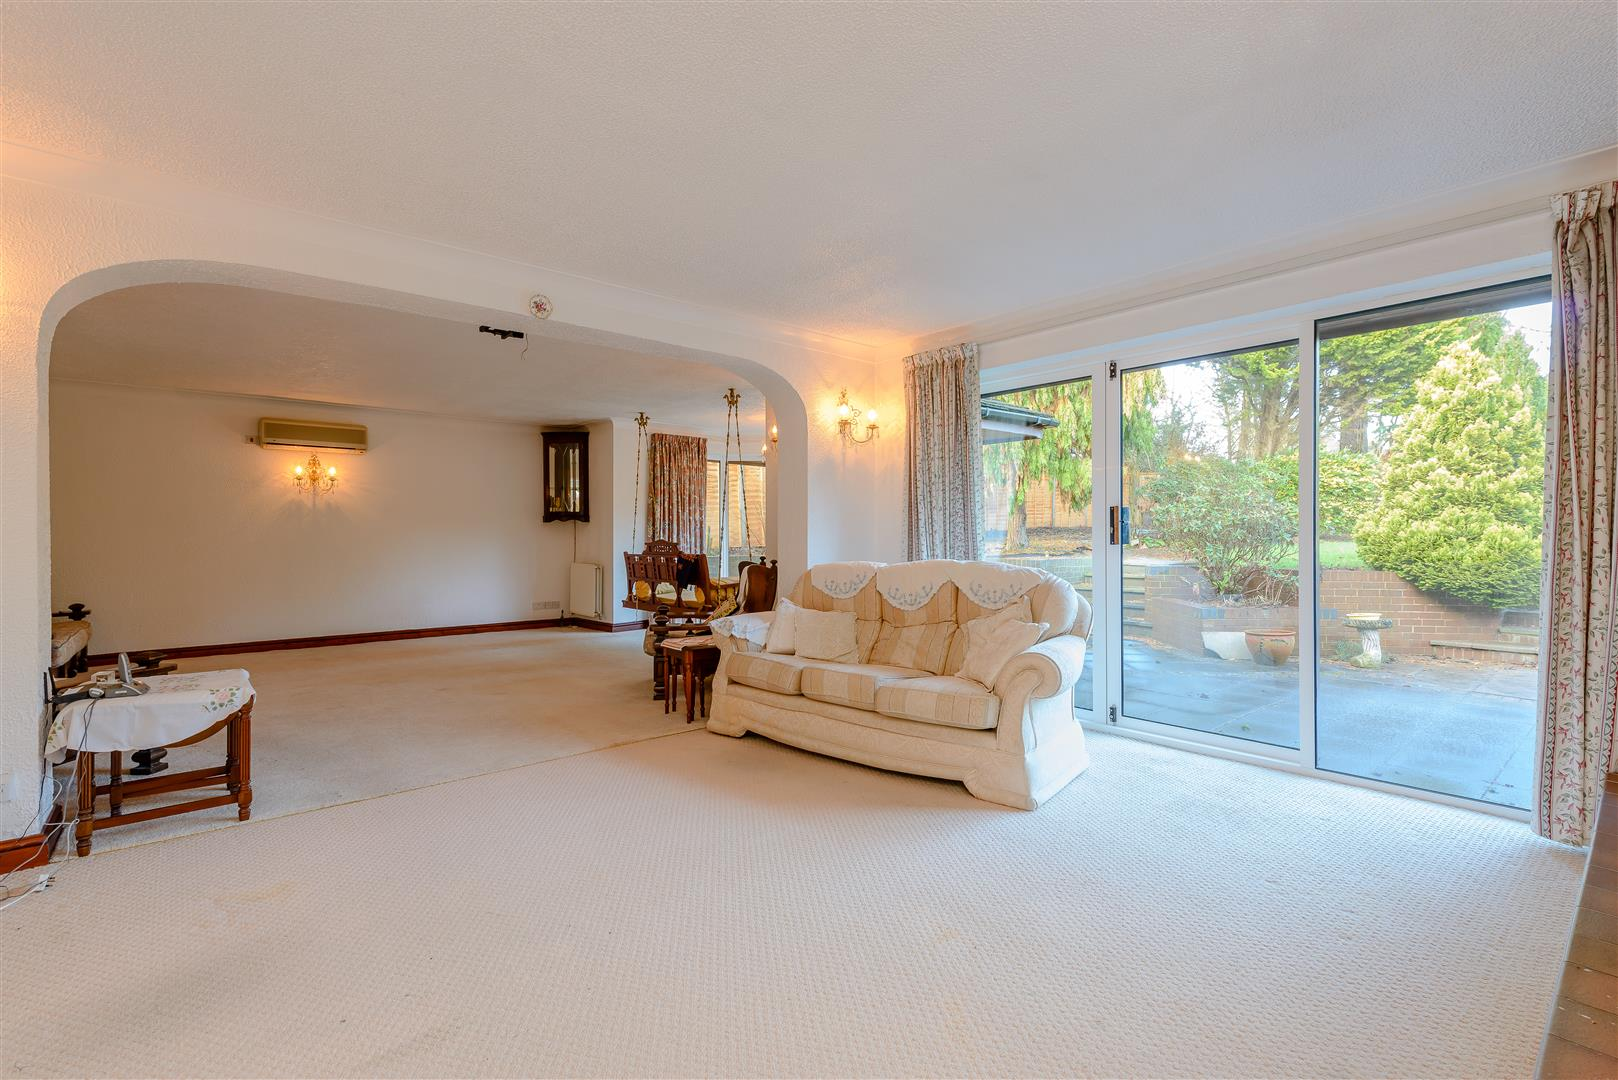 6 bedroom House for sale in Solihull